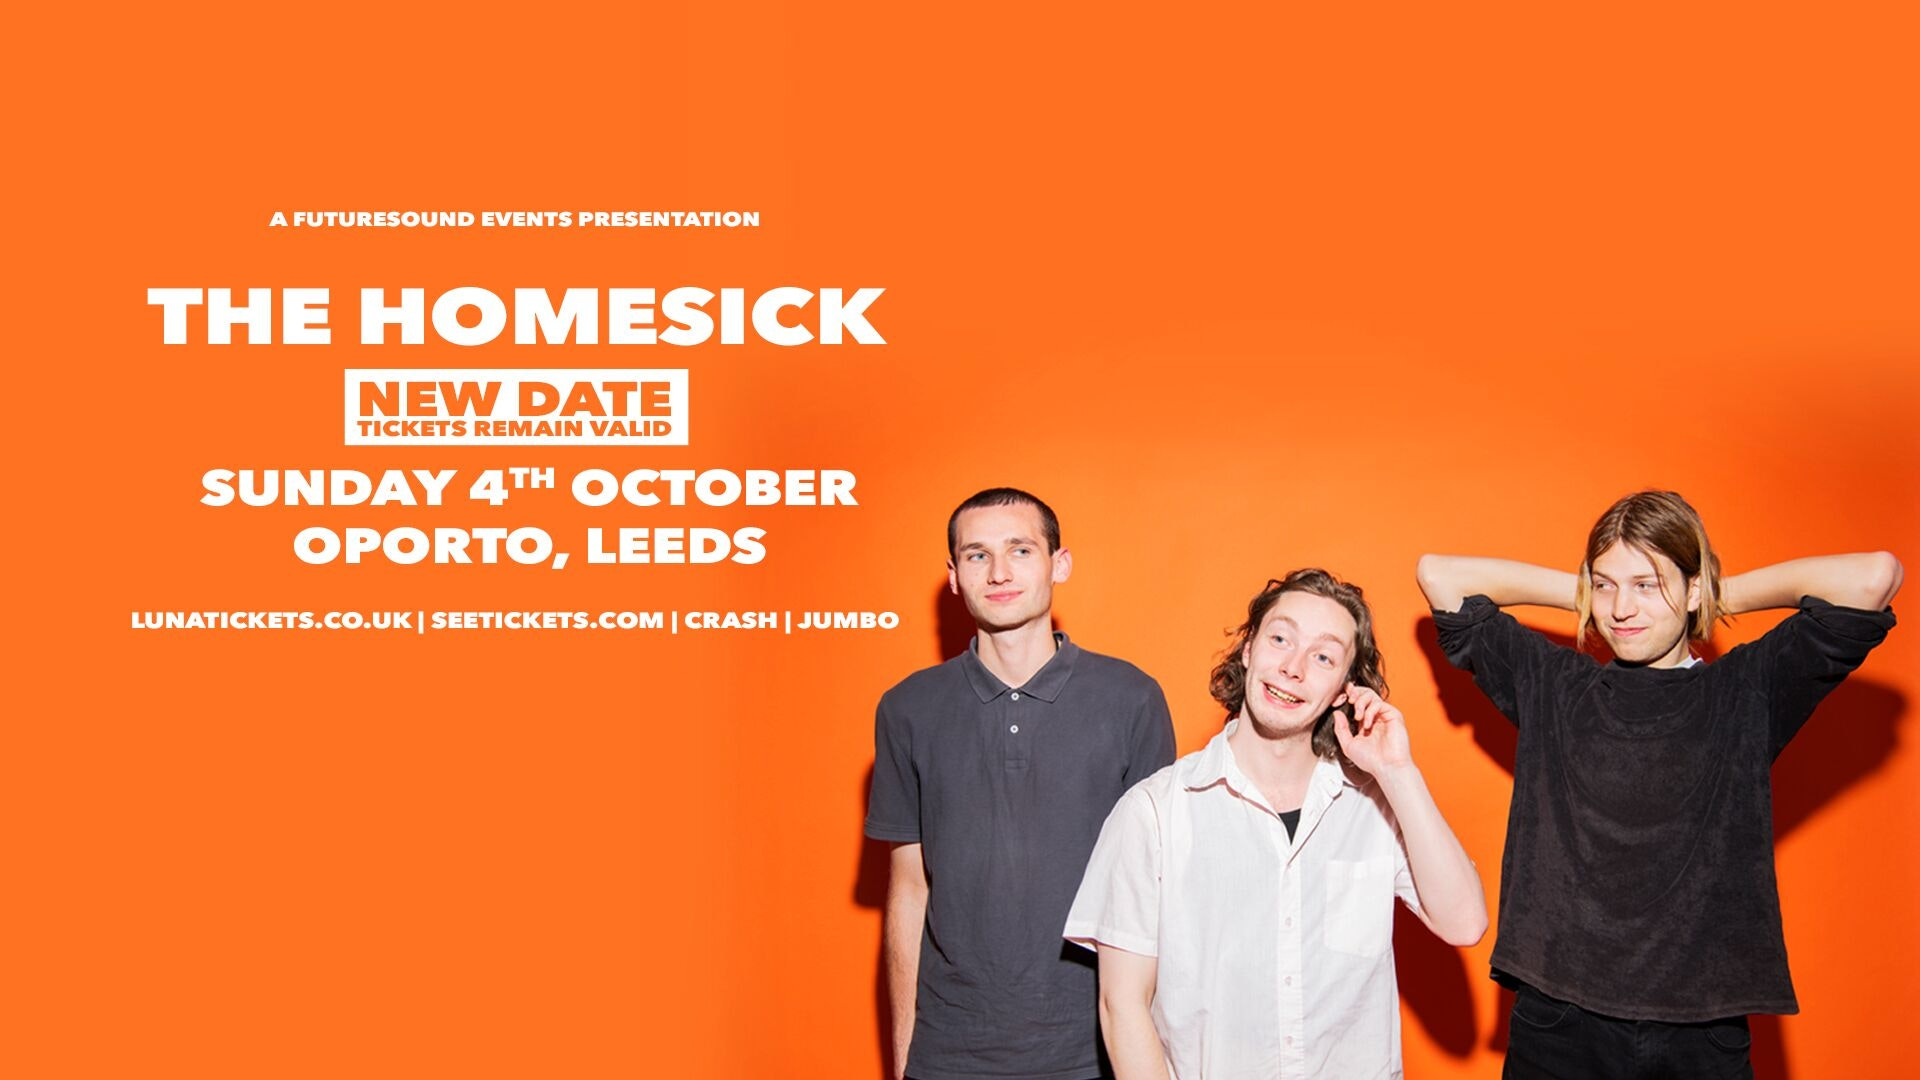 The Homesick – new date